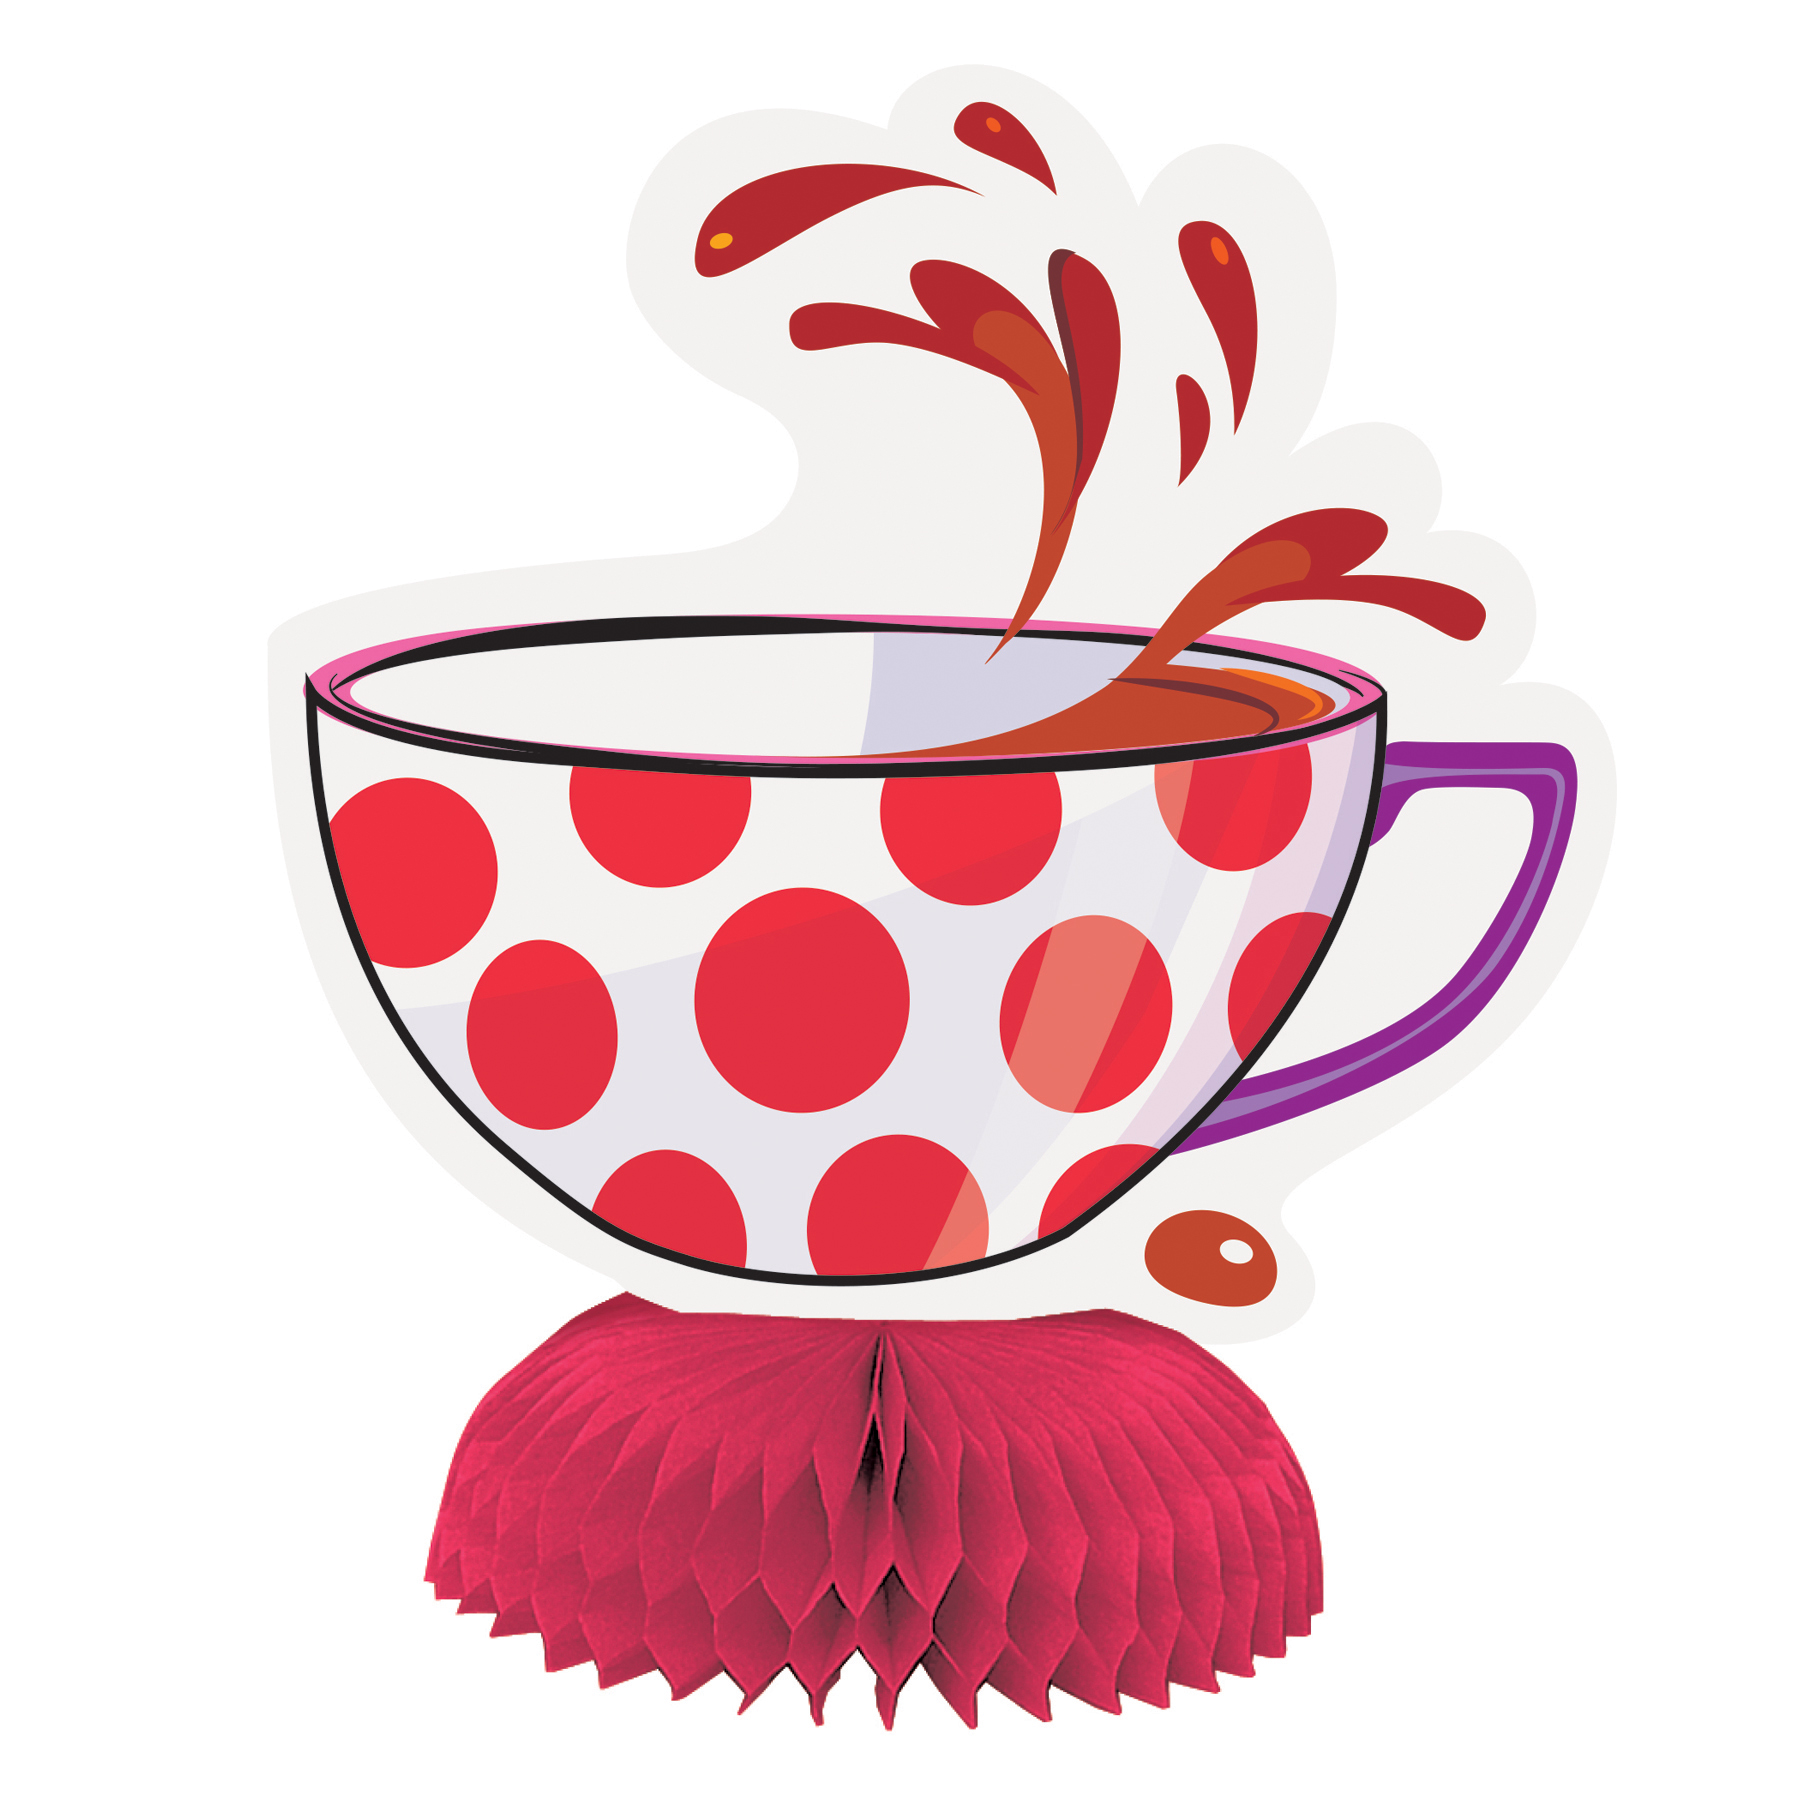 mad hatter tea party clipart free download best mad